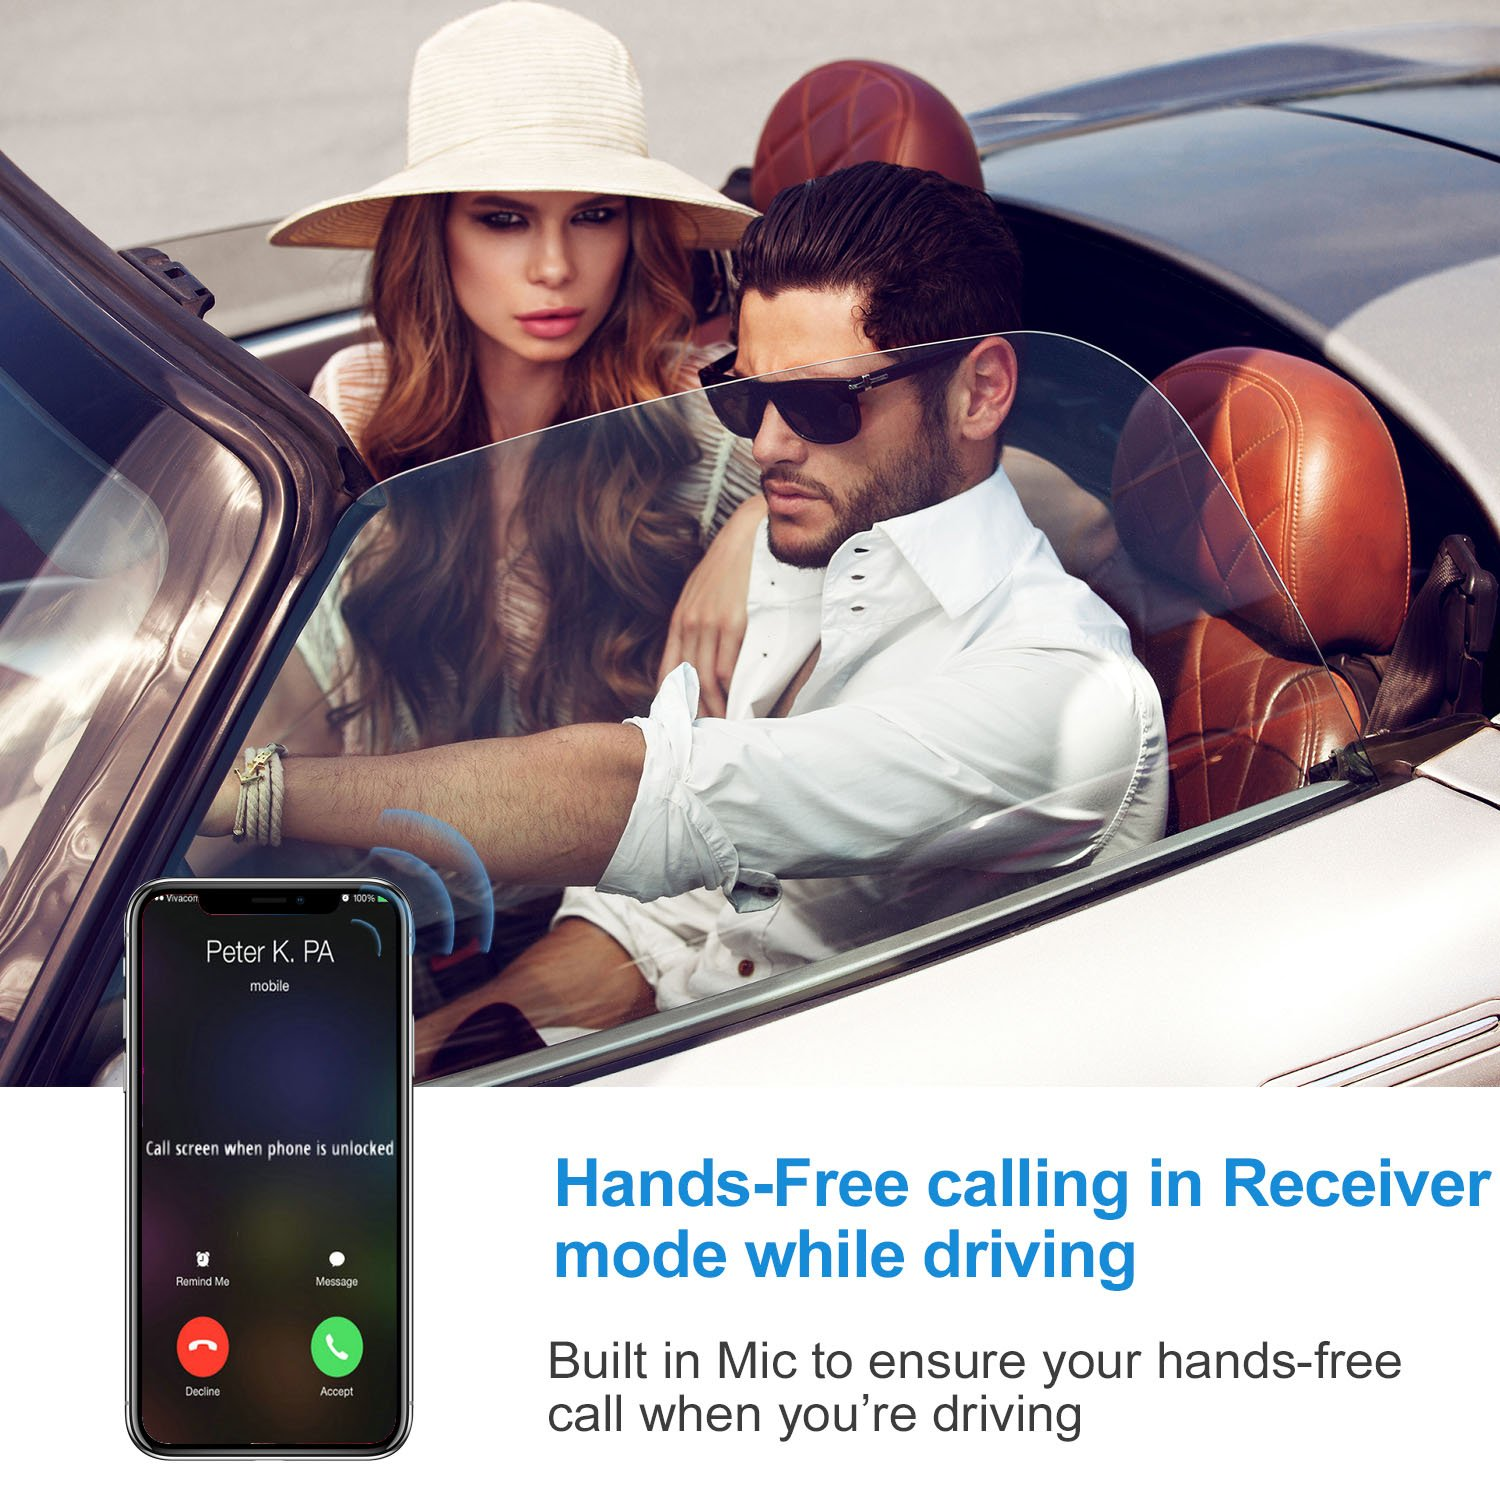 Bluetooth 4.2 Receiver Adapter/Car Kit,Csr aptX Low Latency,Kroaprao Wireless Bluetooth 3.5mm AUX and RCA HiFi Audio Receiver Devices 300mAh (10Hrs,NFC,Hands-Free Calling) for Home Stereo System by KROA PRAO (Image #5)